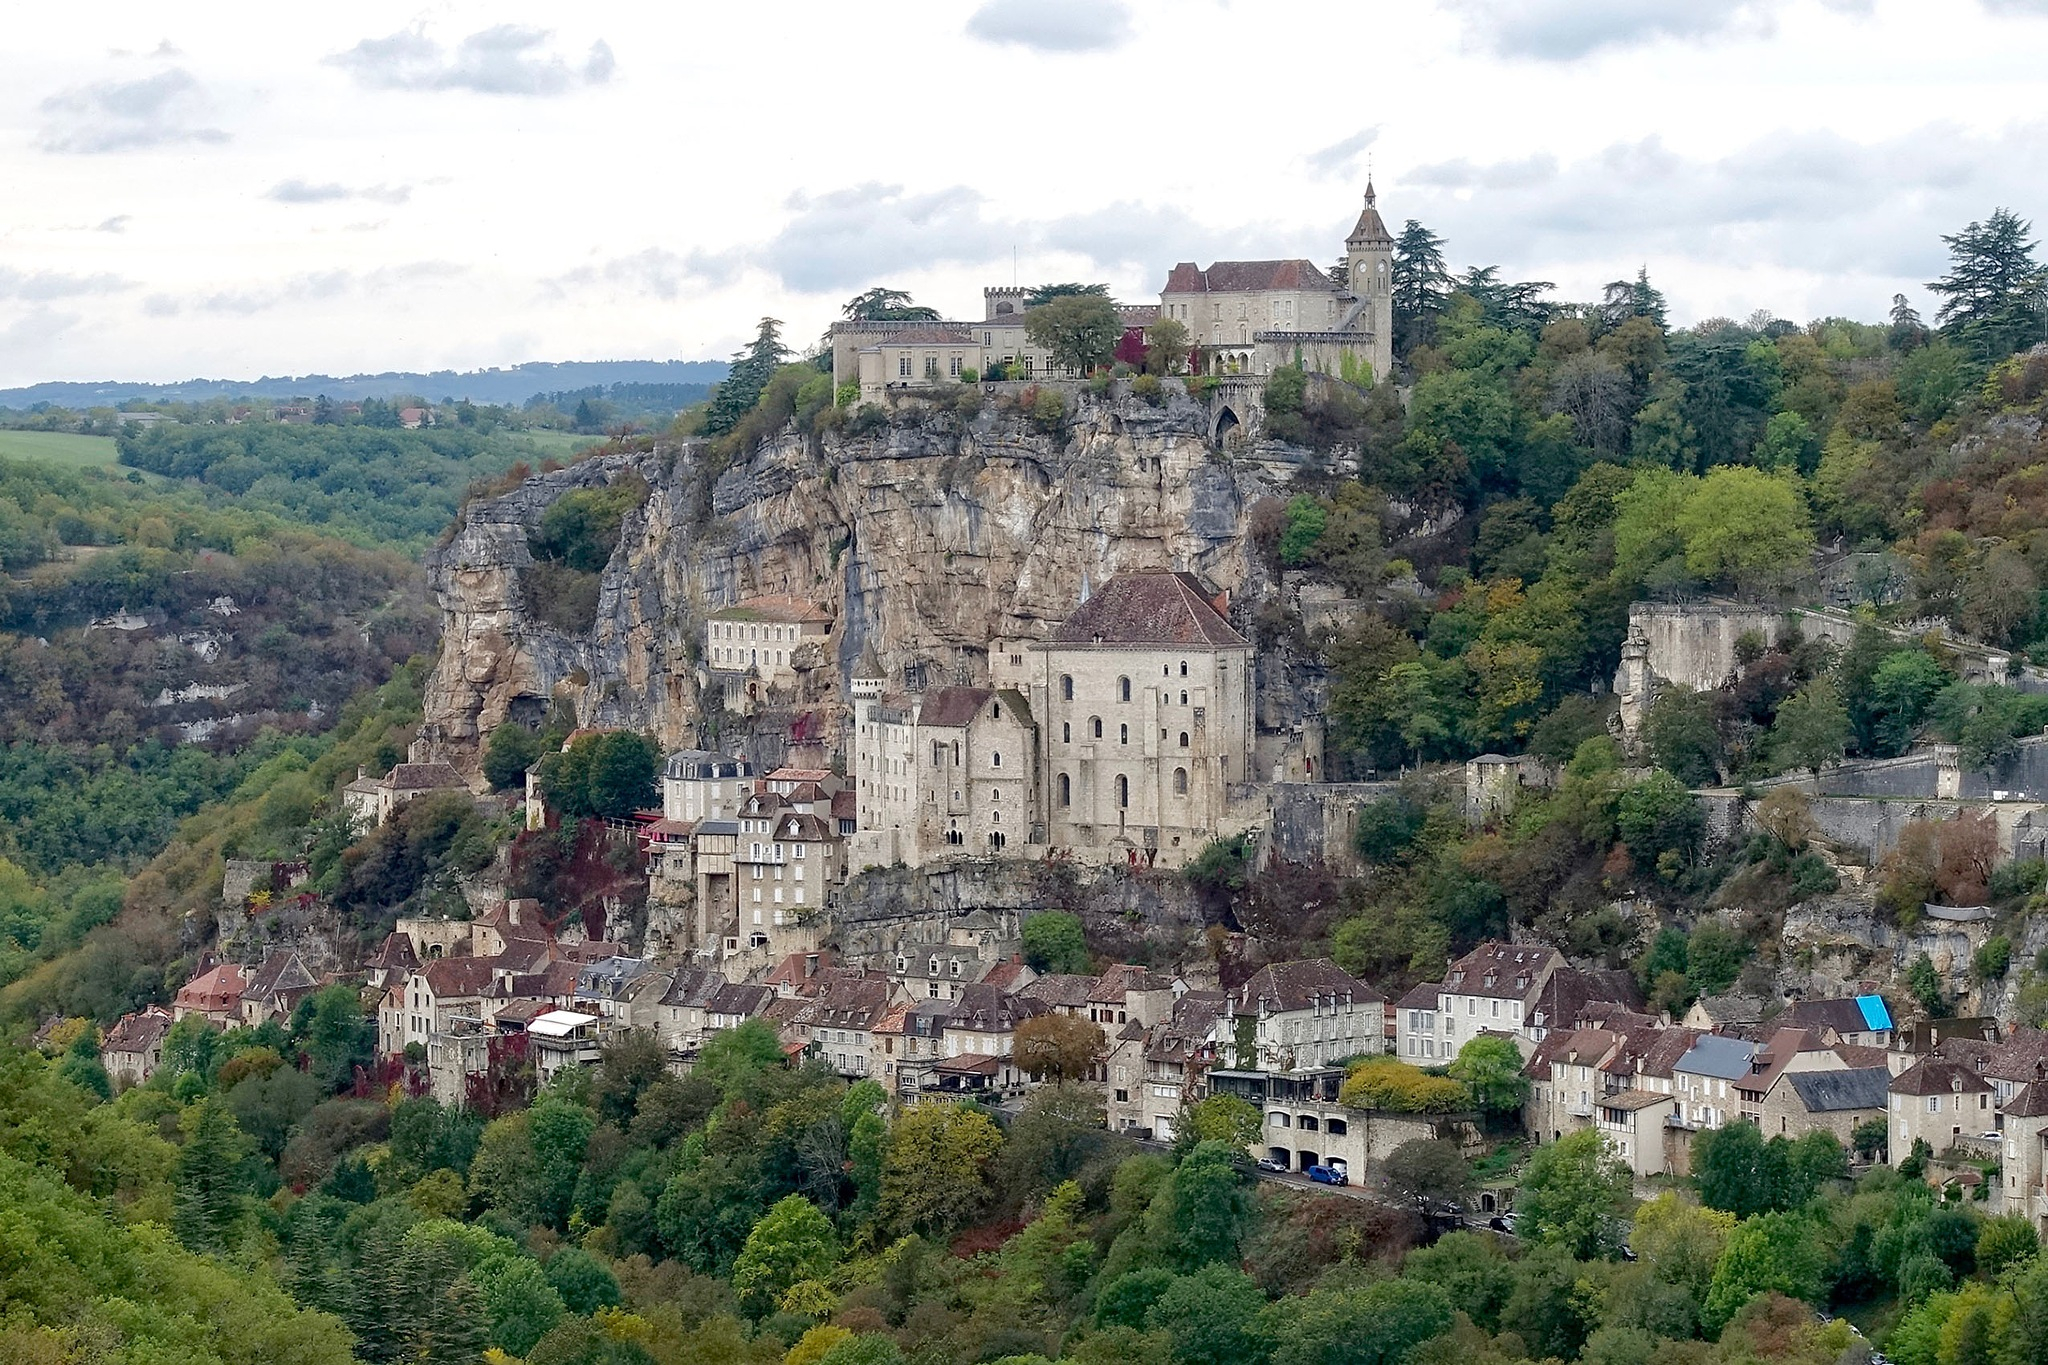 The city of Rocamadour in France. by Erwin Widmer